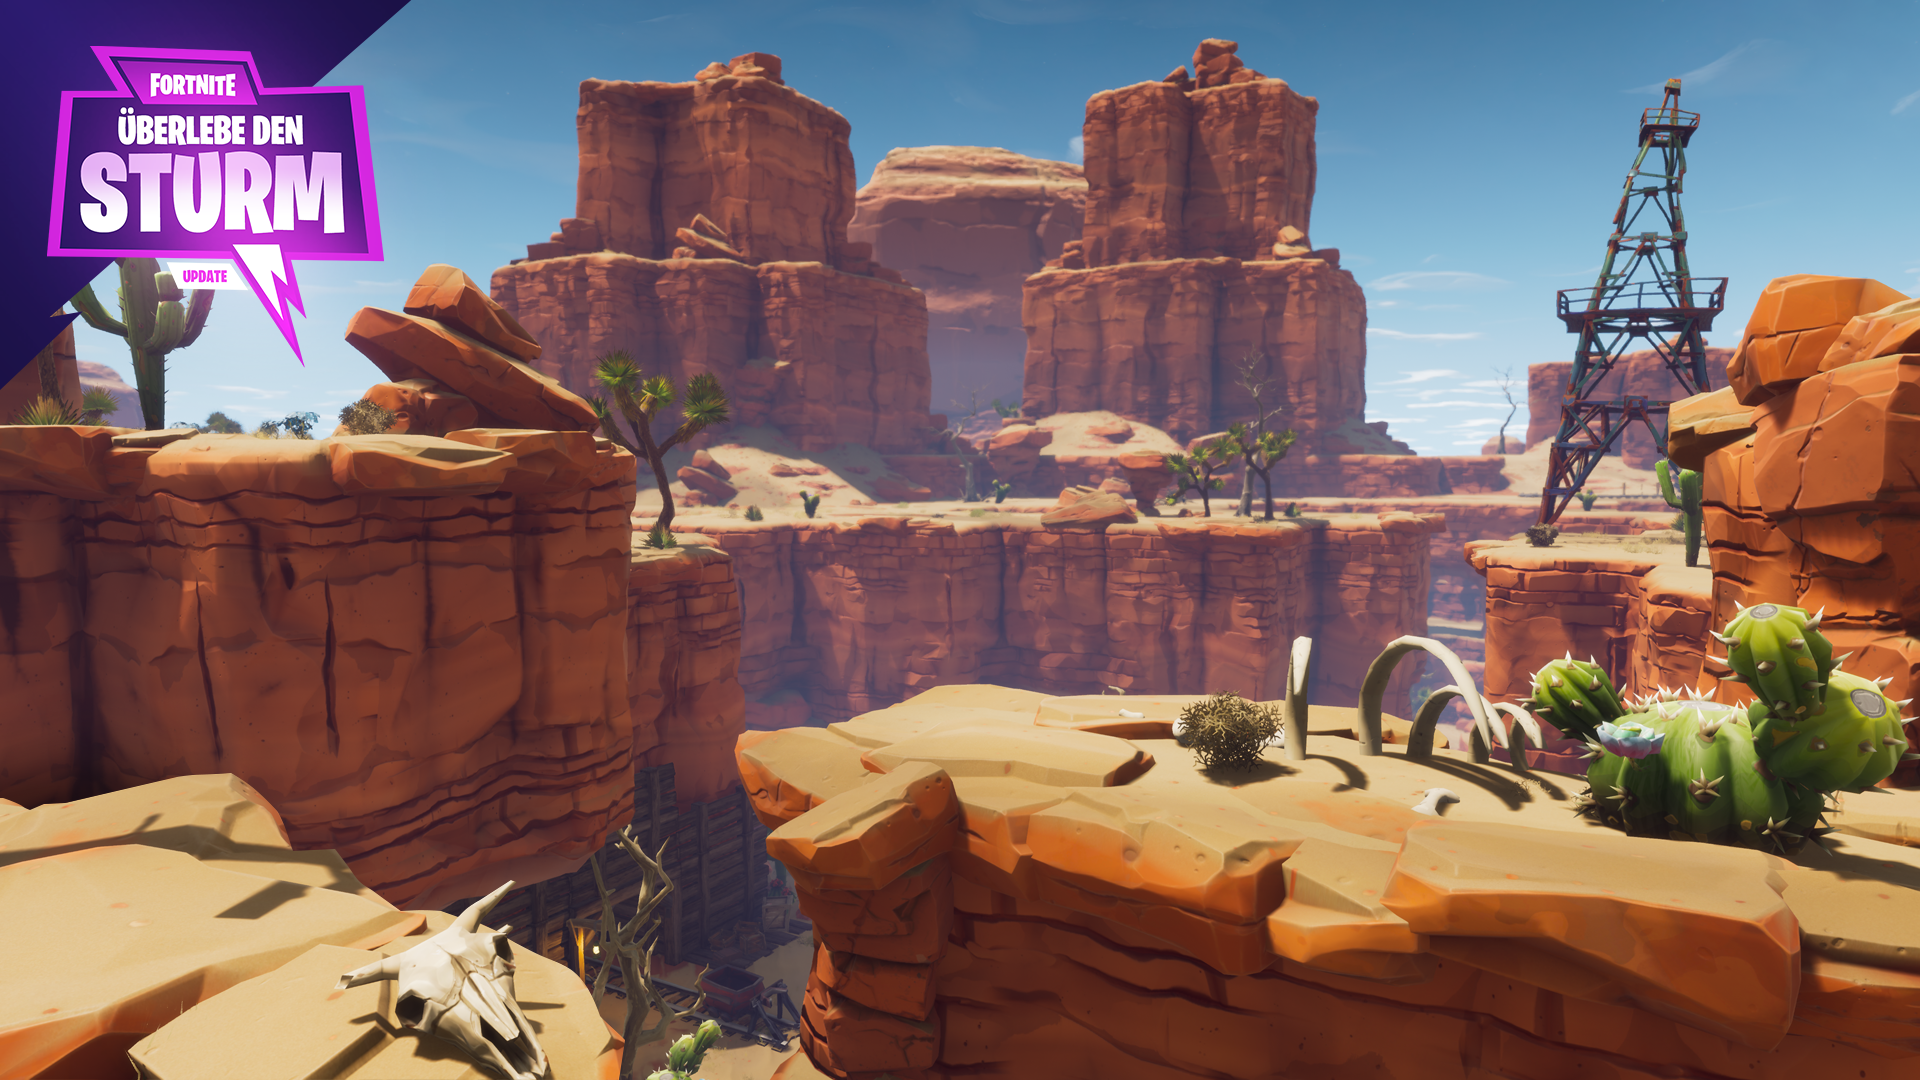 Fortnite%2Fblog%2Fsurvive-the-storm---release-notes%2FDE_1-Canny-Valley-1920x1080-6c1f1d047cd9cc144cf3696775635406aaffe5e2